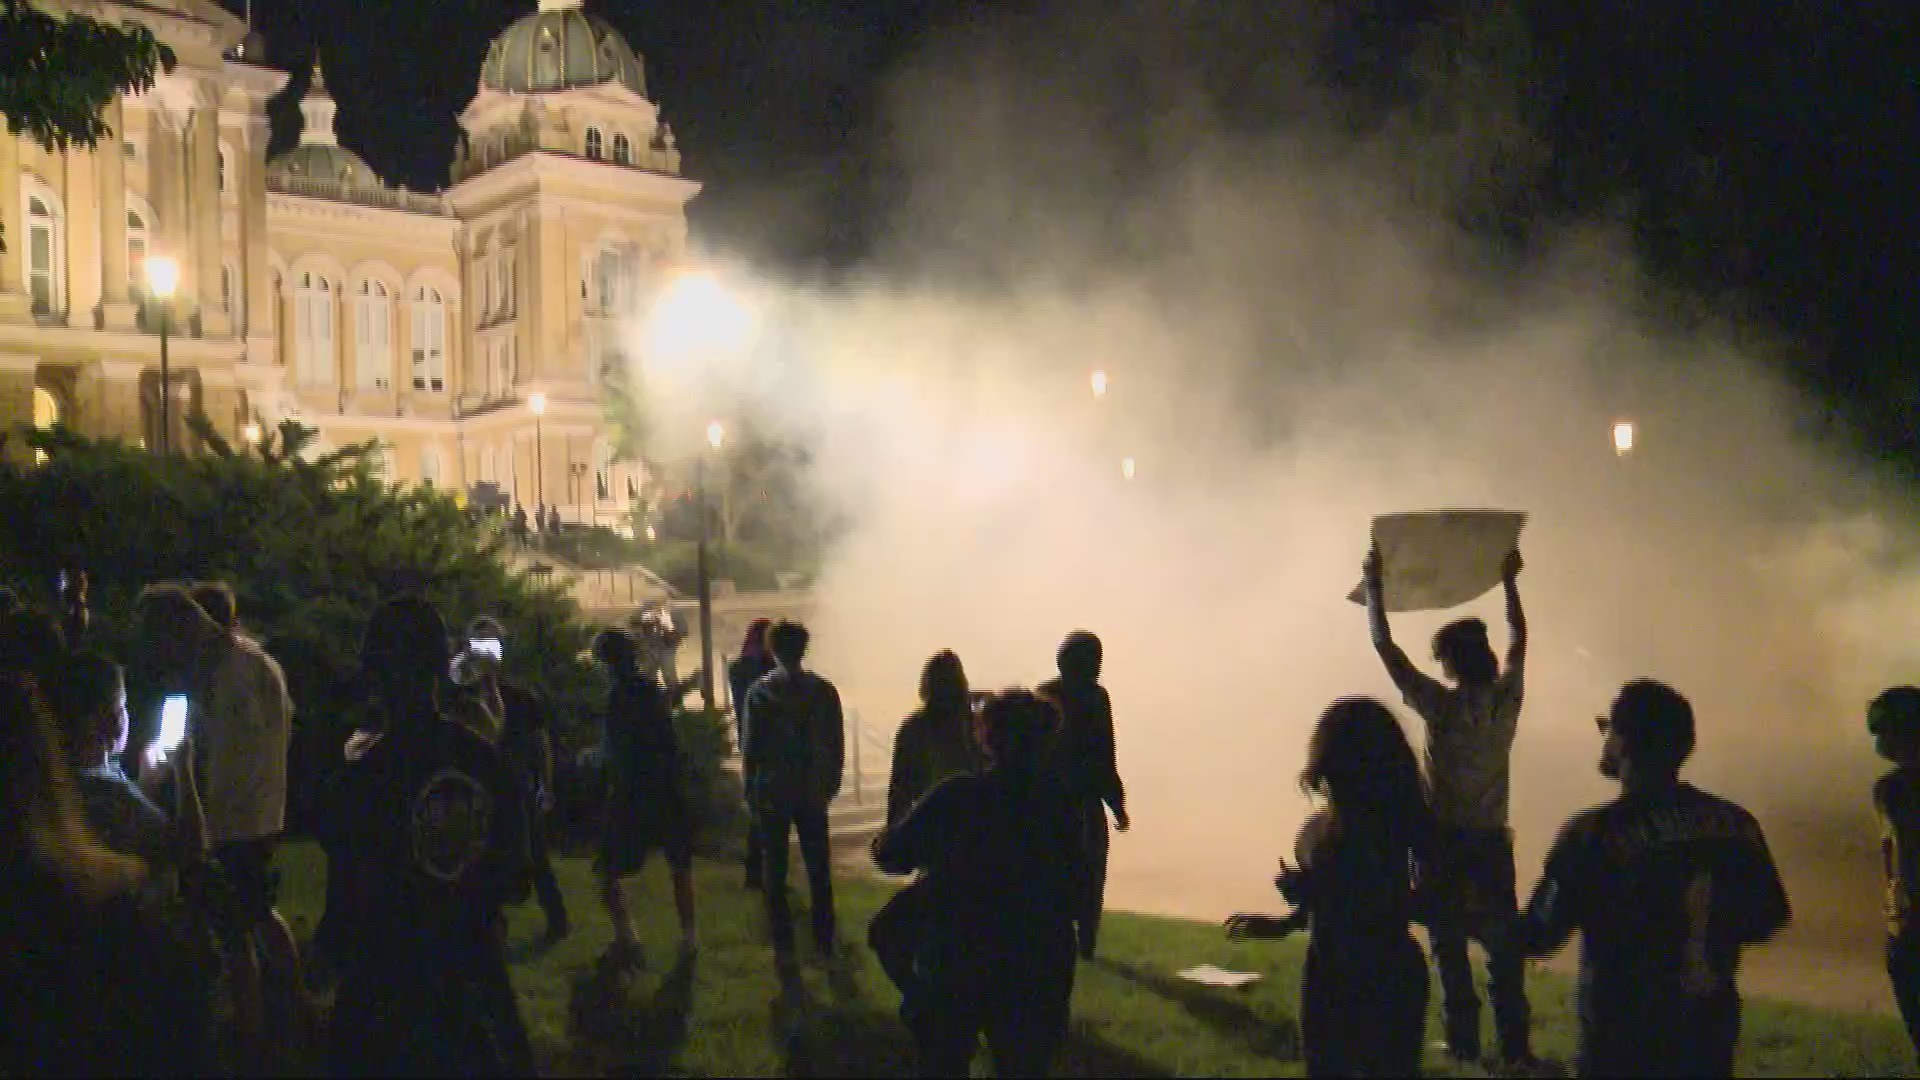 Protester Describes Getting Arrested During 'Chaos' at the Iowa State Capitol 1